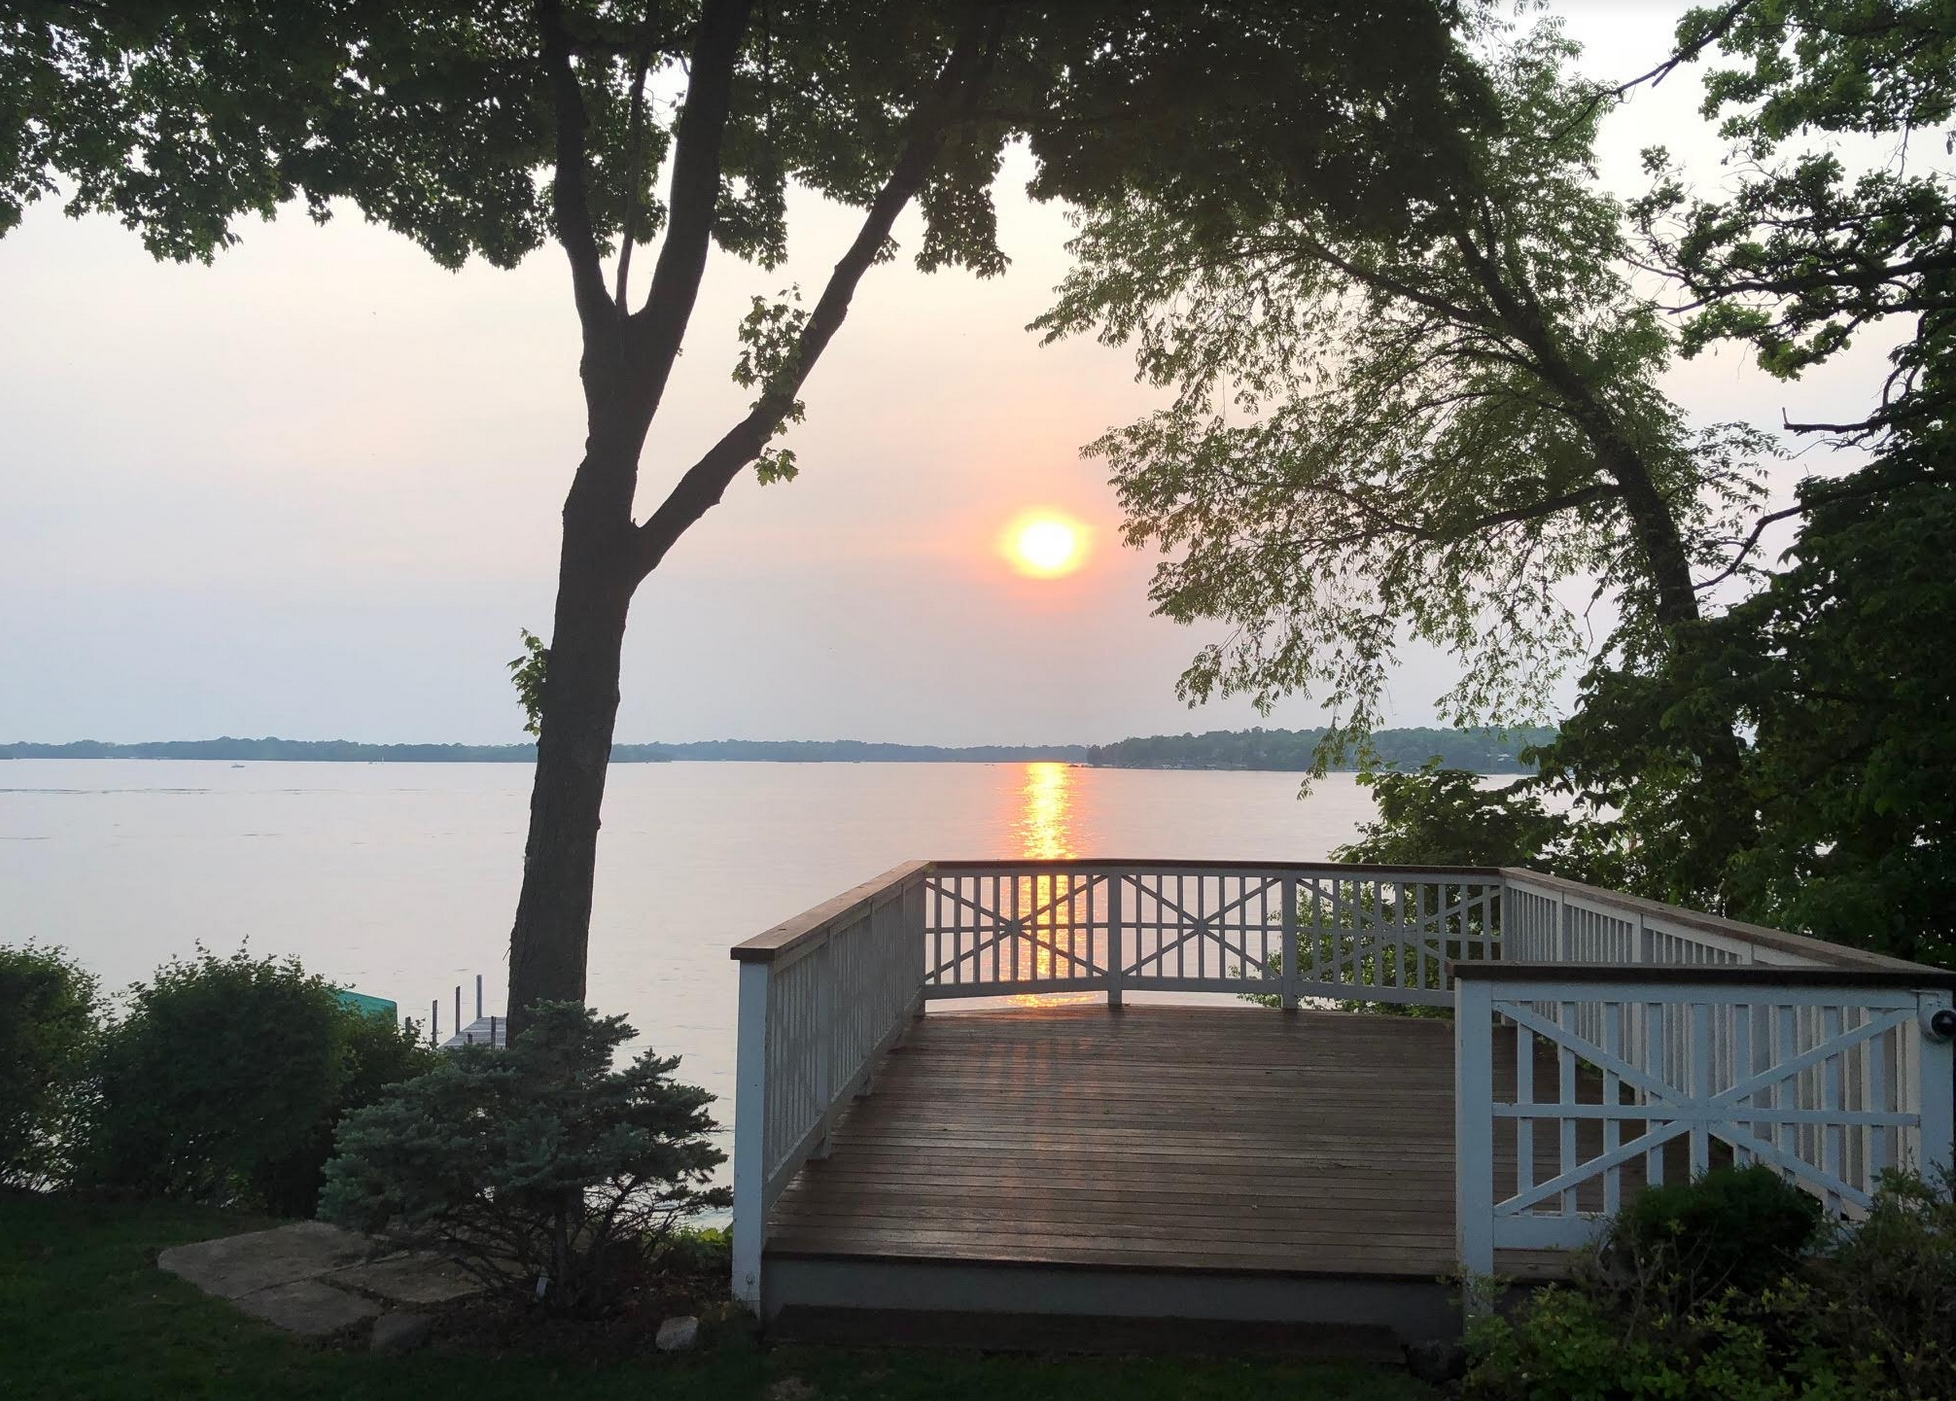 A Rare and Wondrous Hot Front for Friday – Smoky Skies From Canadian Fires